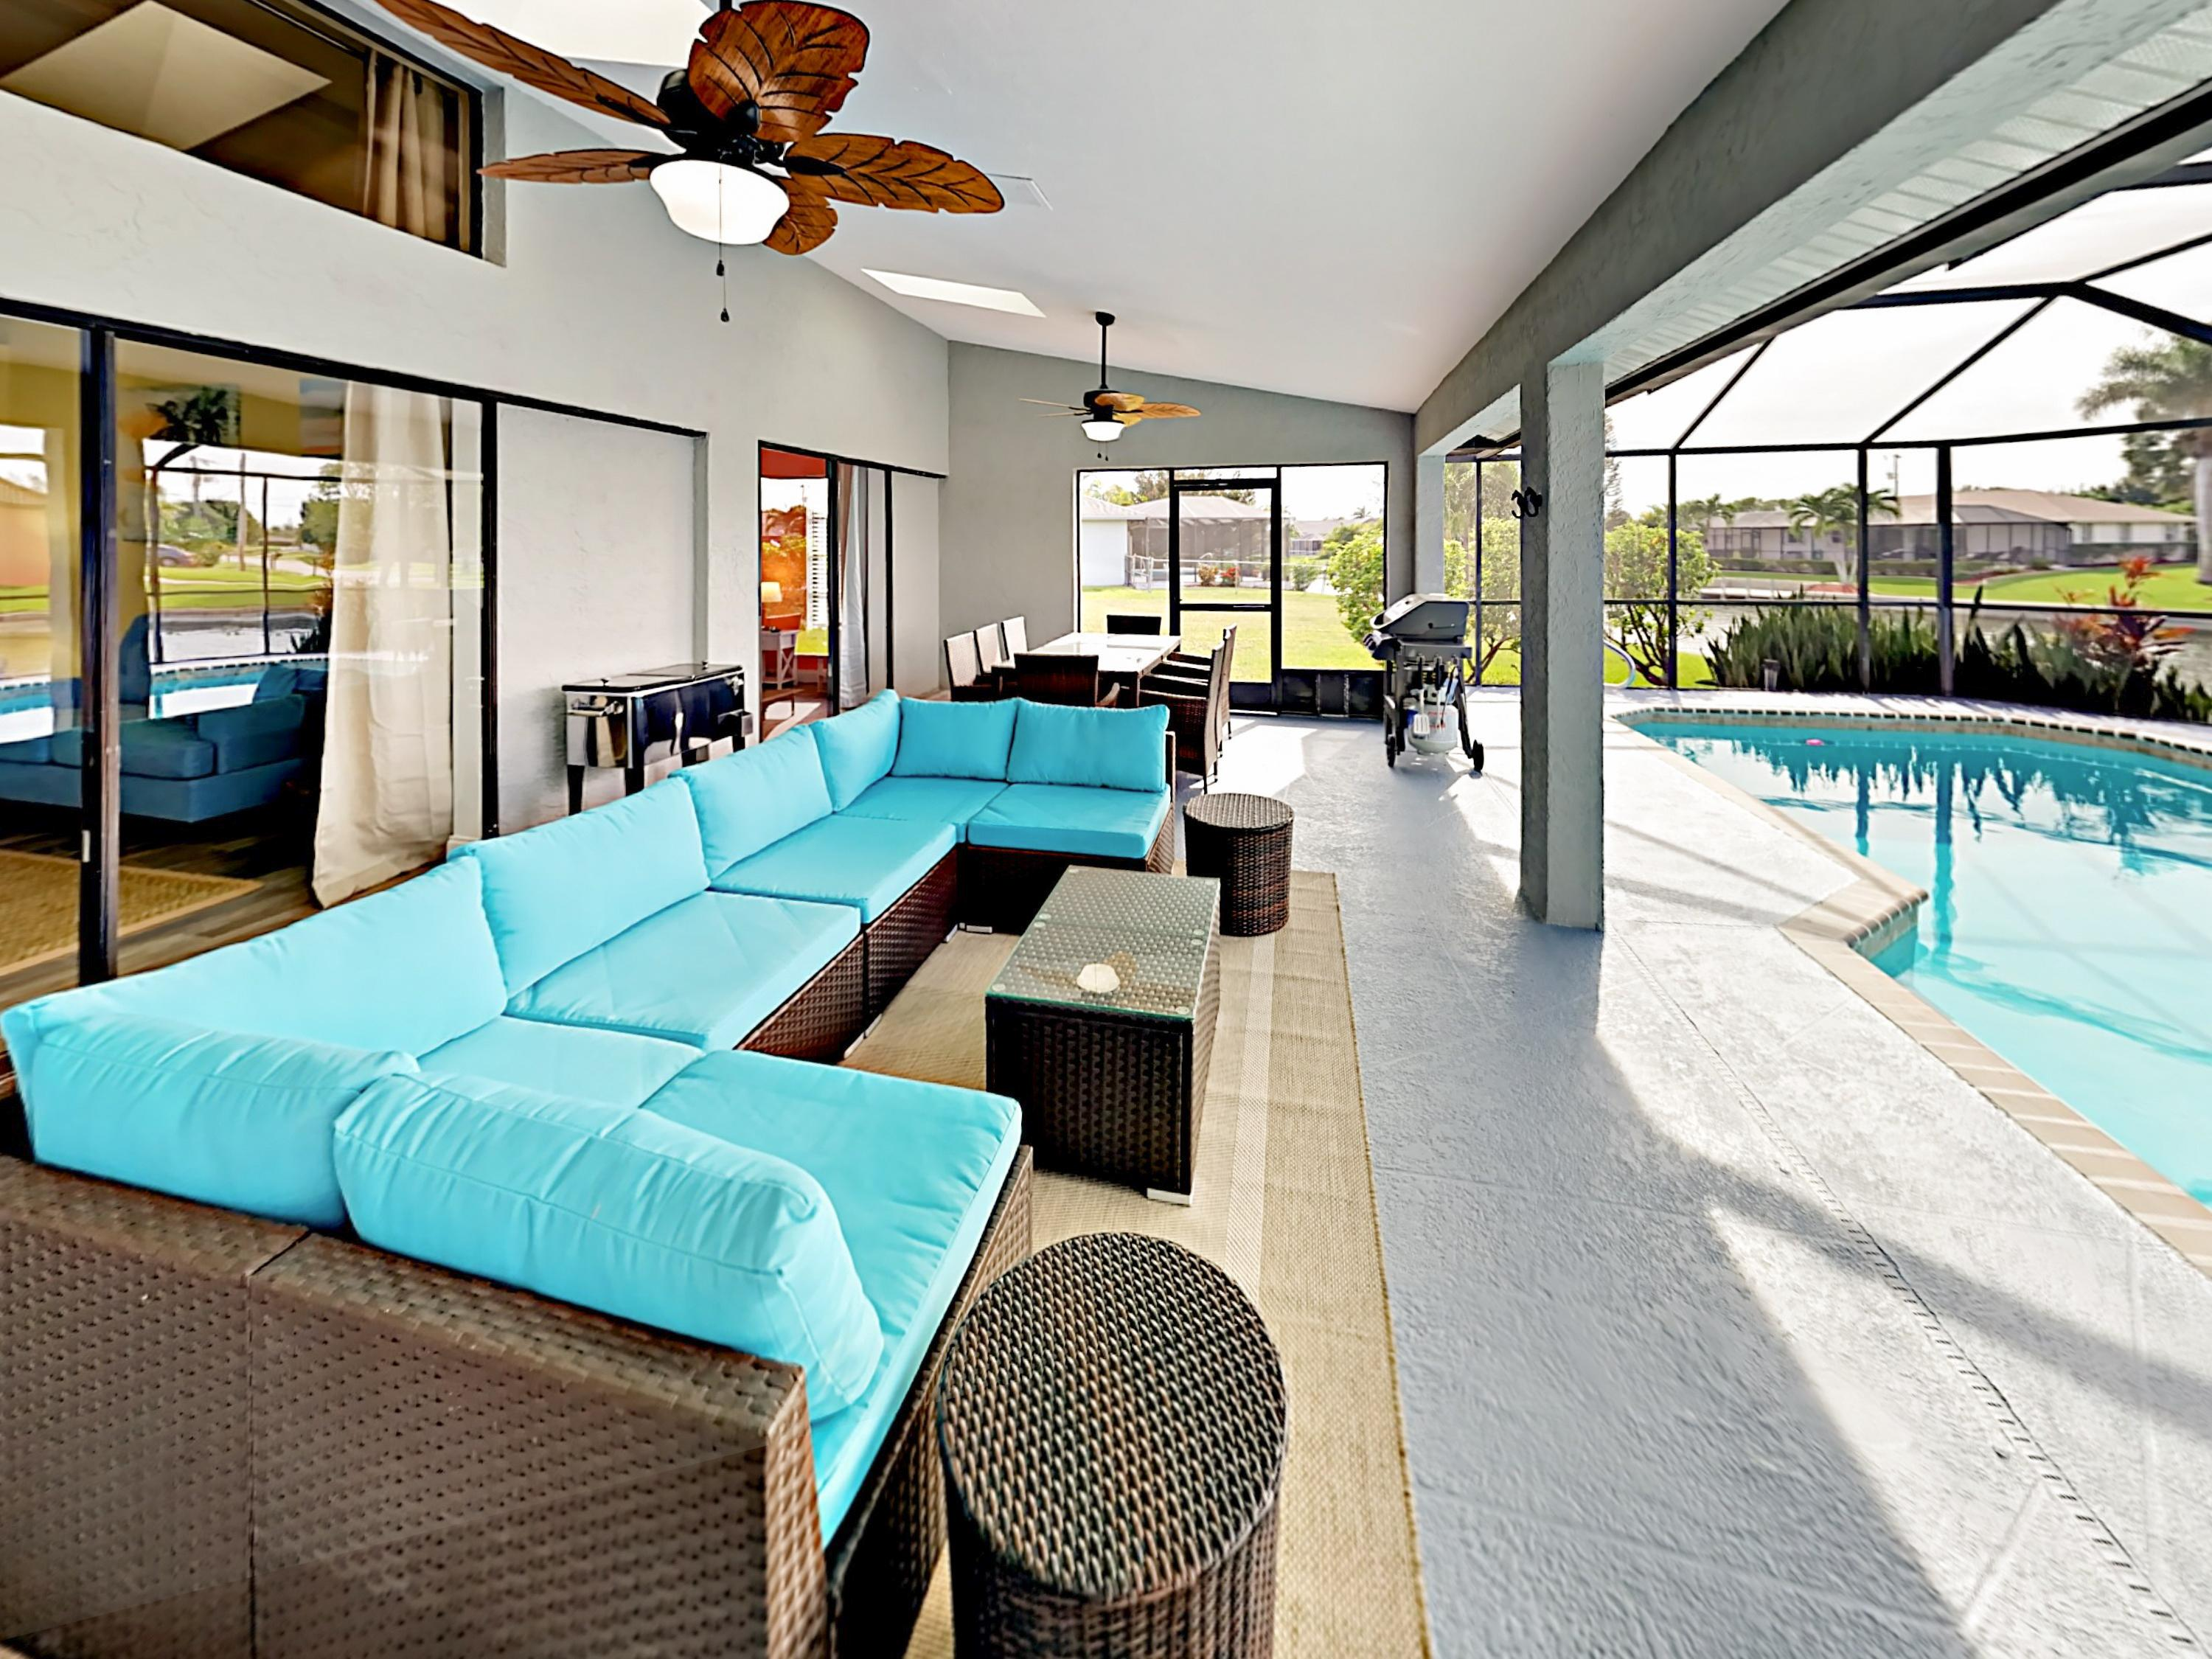 Lounge on the sectional for 6 by the pool.